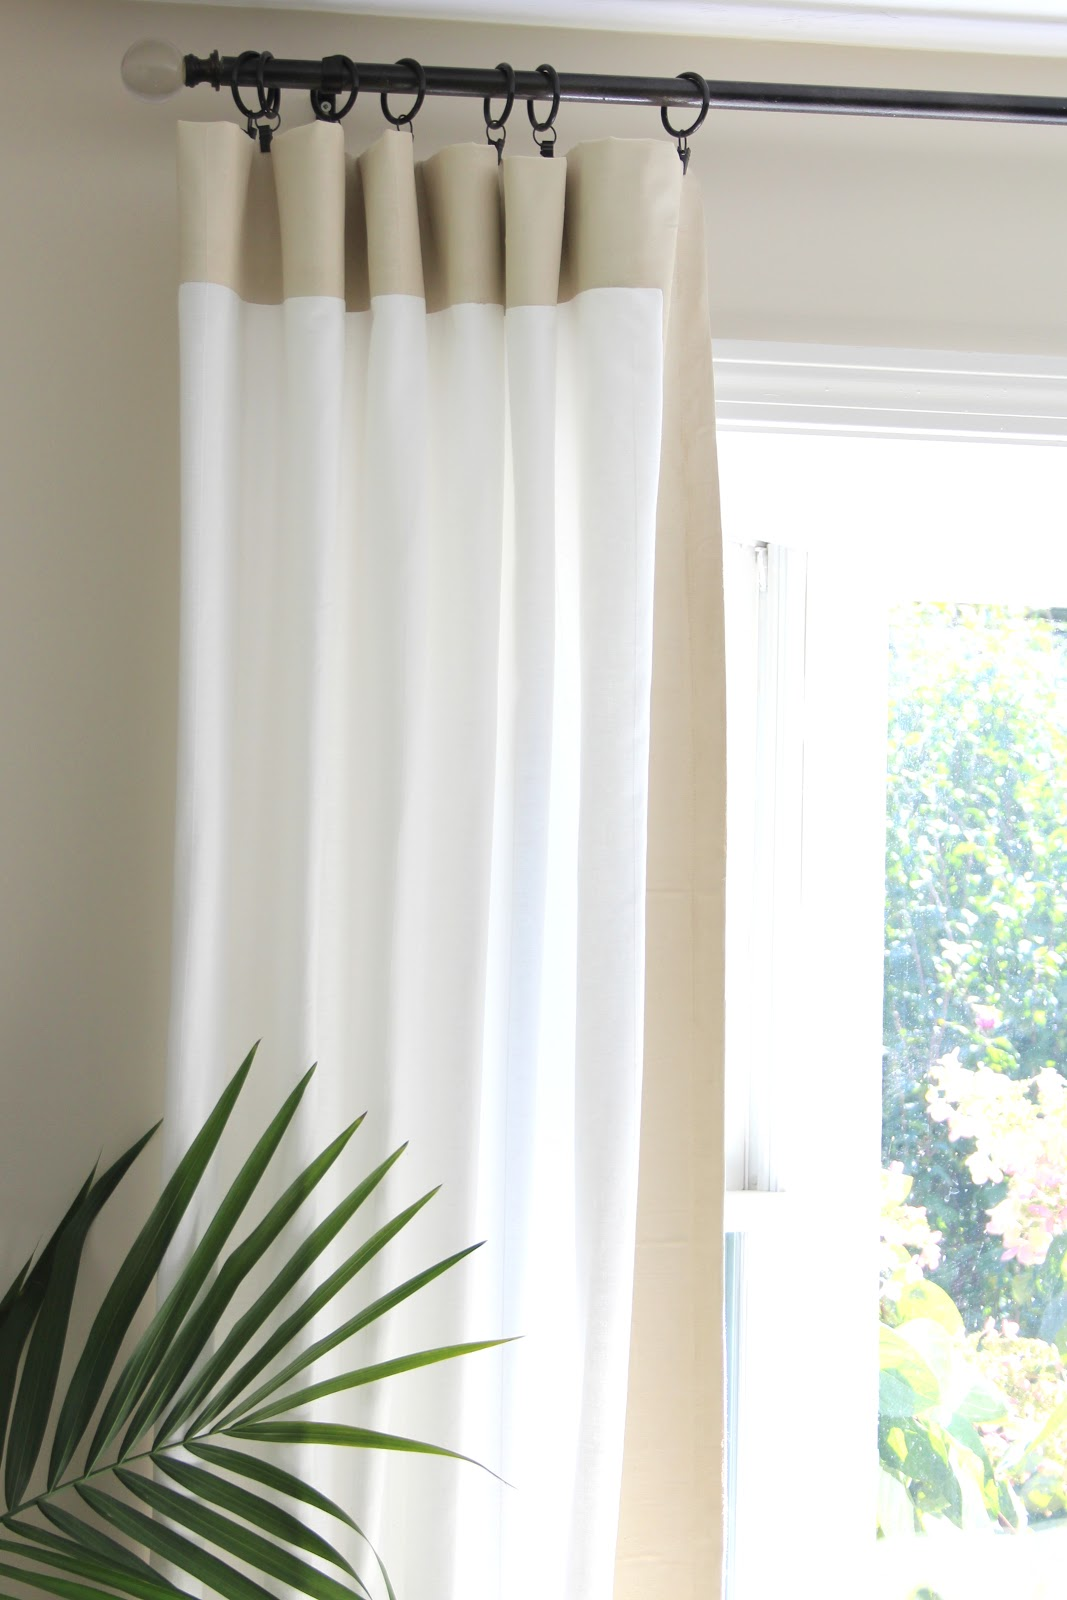 grommet inch long buy and pipe custom mesh for endearing rods garde drape where diy curtains fabric portrait panels illustration waterproof backyard best pvc to wide drapes of sun avant canvas sunbrella outdoor easy patio cheap resistant with pergola garden curtain patios gallery hanging